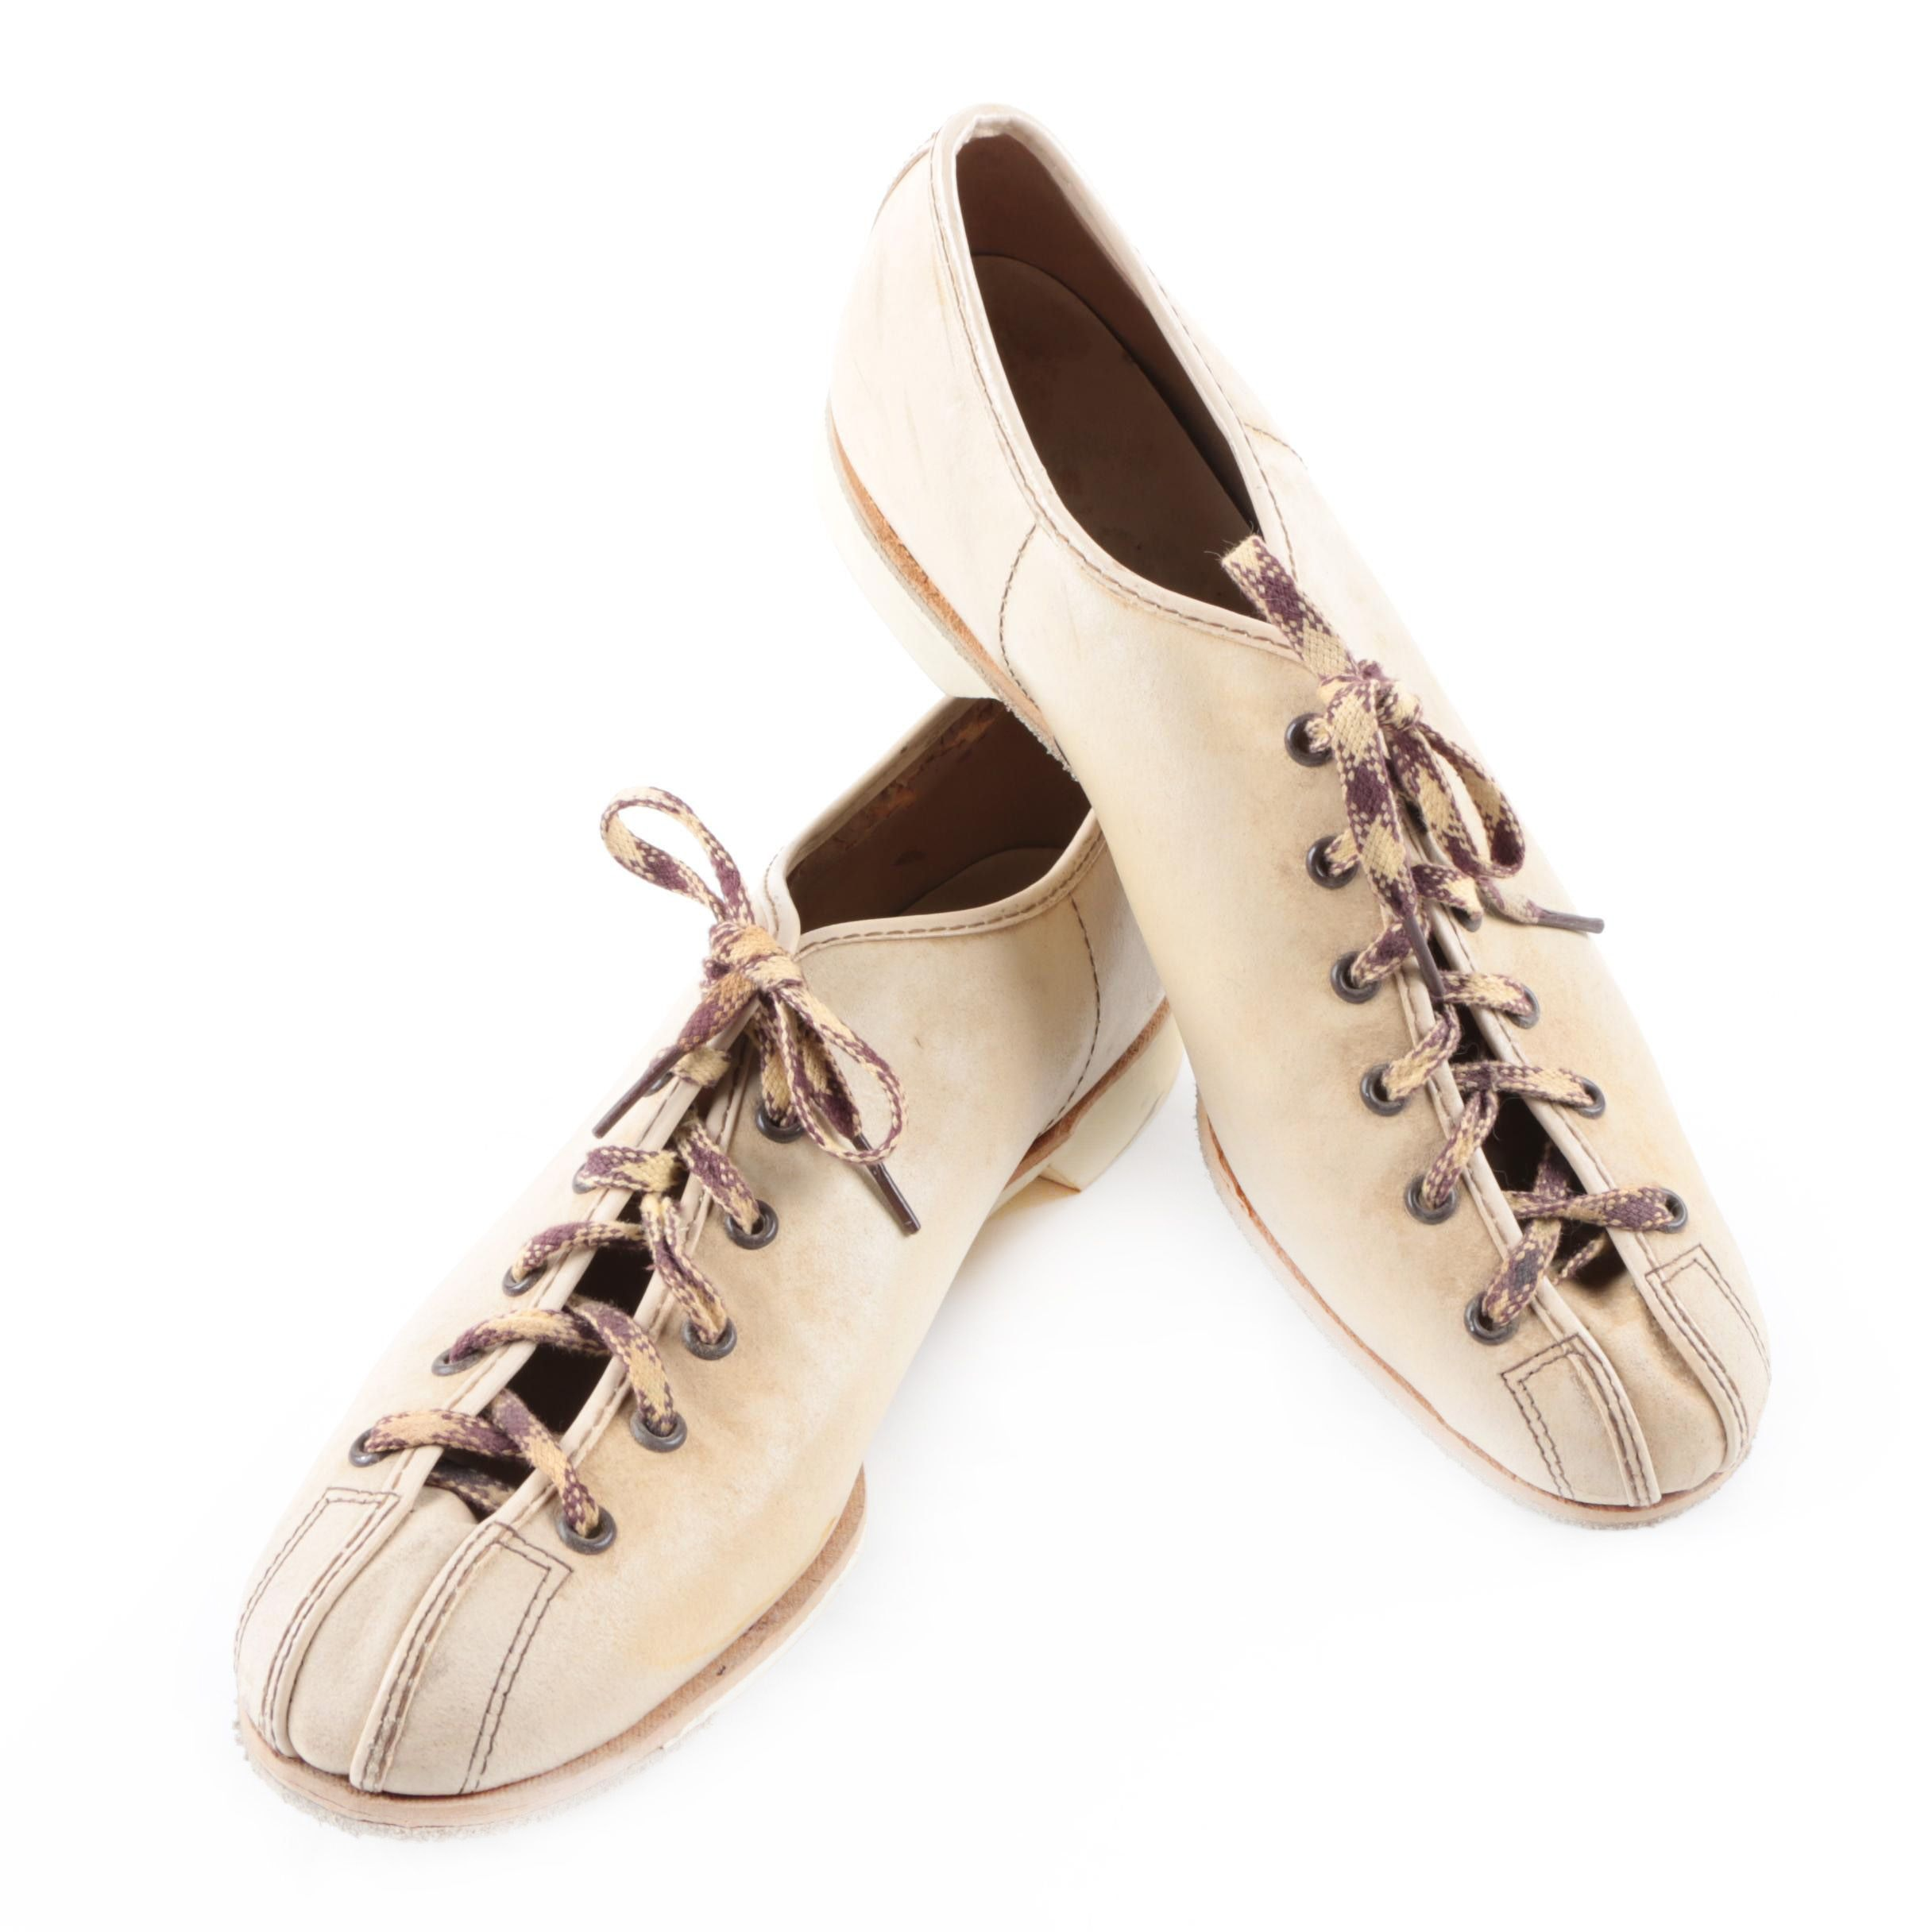 Women's Vintage McGregor Leather Bowling Shoes